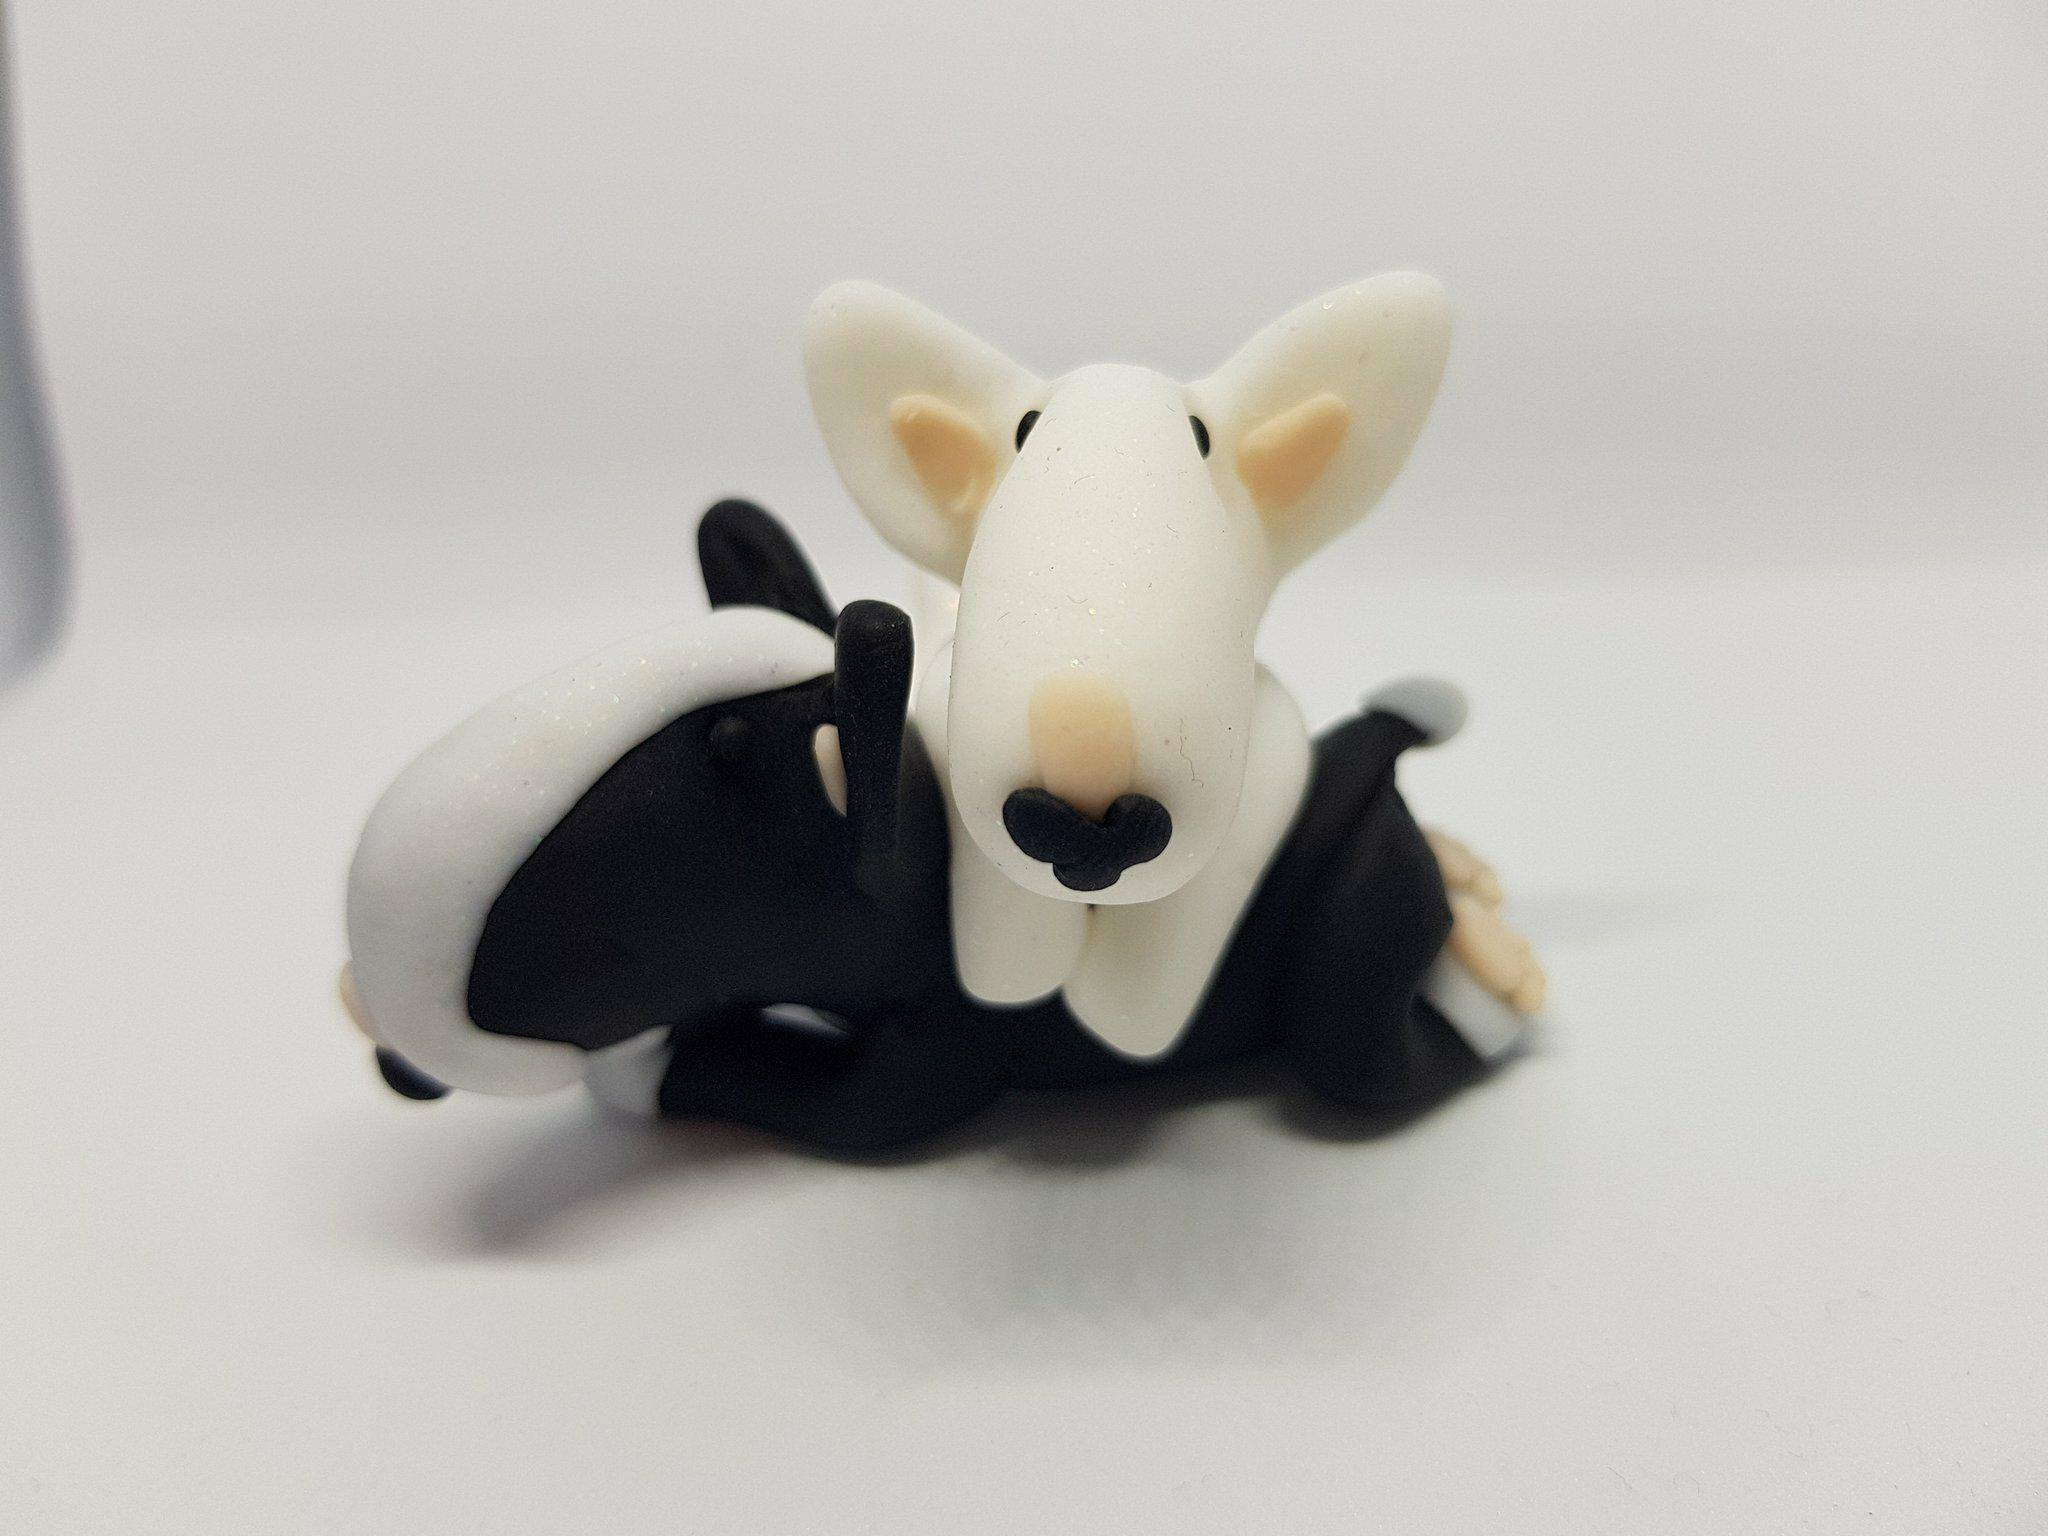 A black english bull terrier figure with another white english bull terrier laying over it